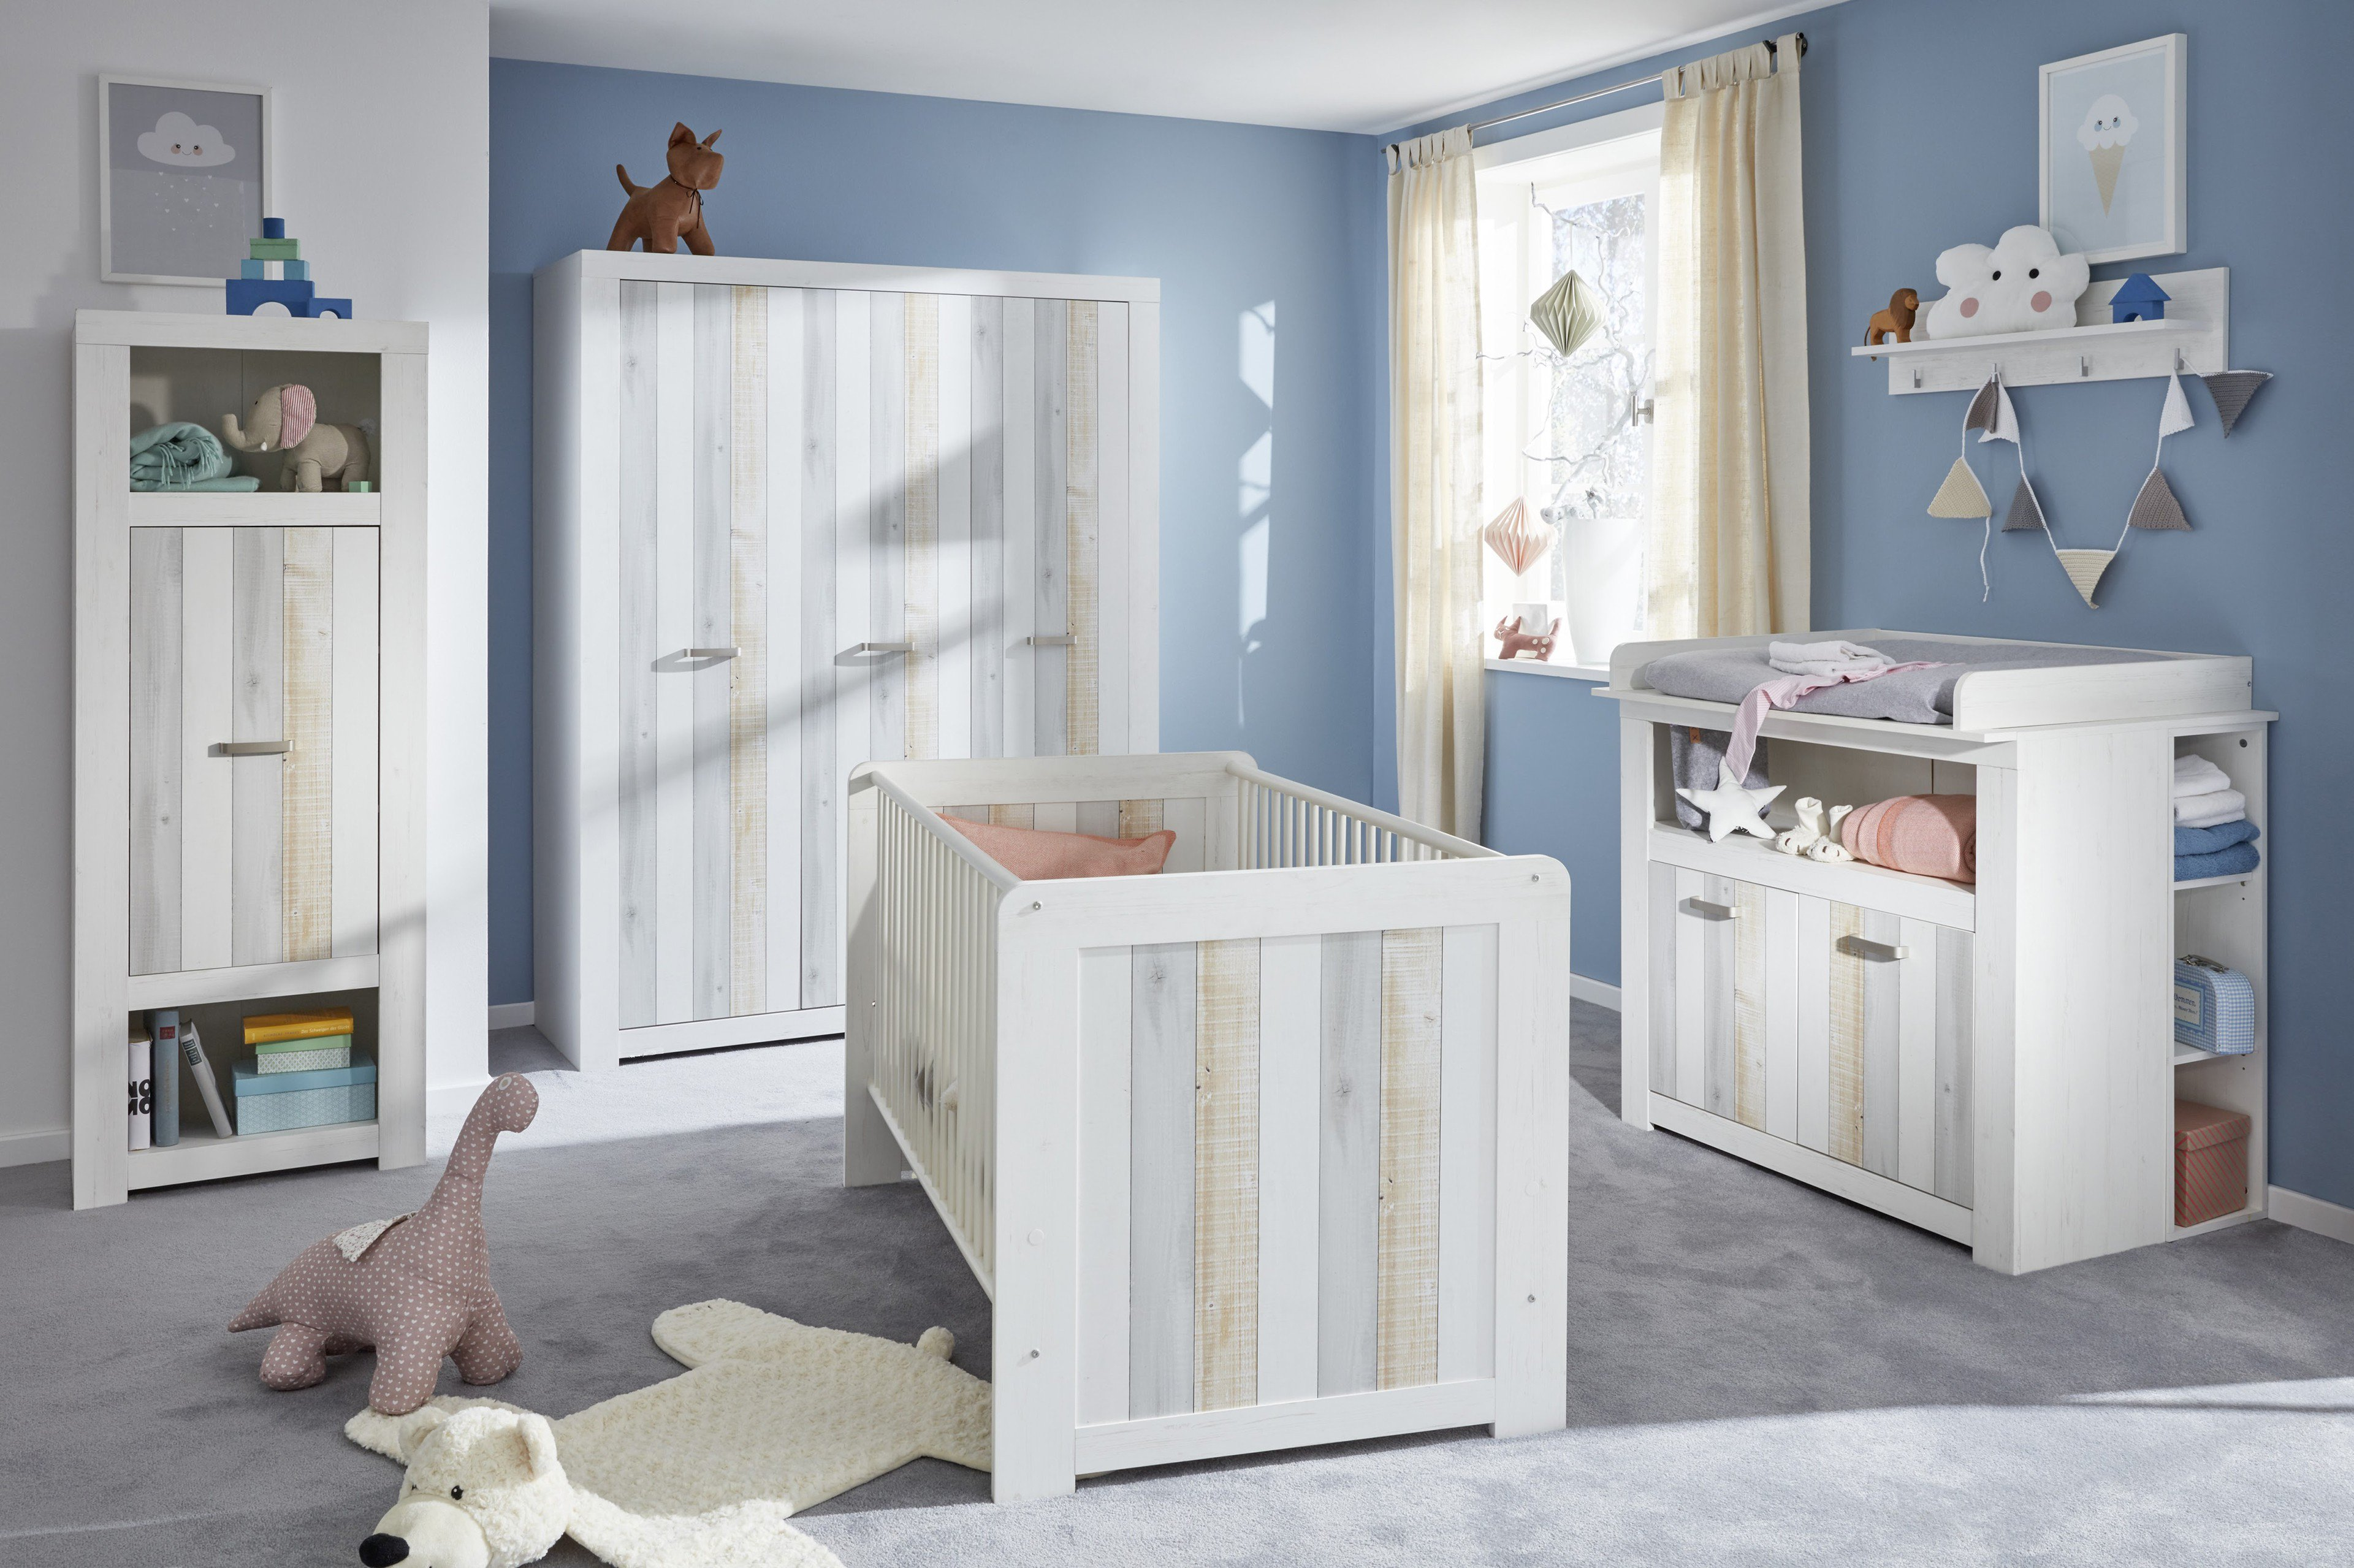 trendteam joshua babyzimmer 4 teilig m bel letz ihr online shop. Black Bedroom Furniture Sets. Home Design Ideas